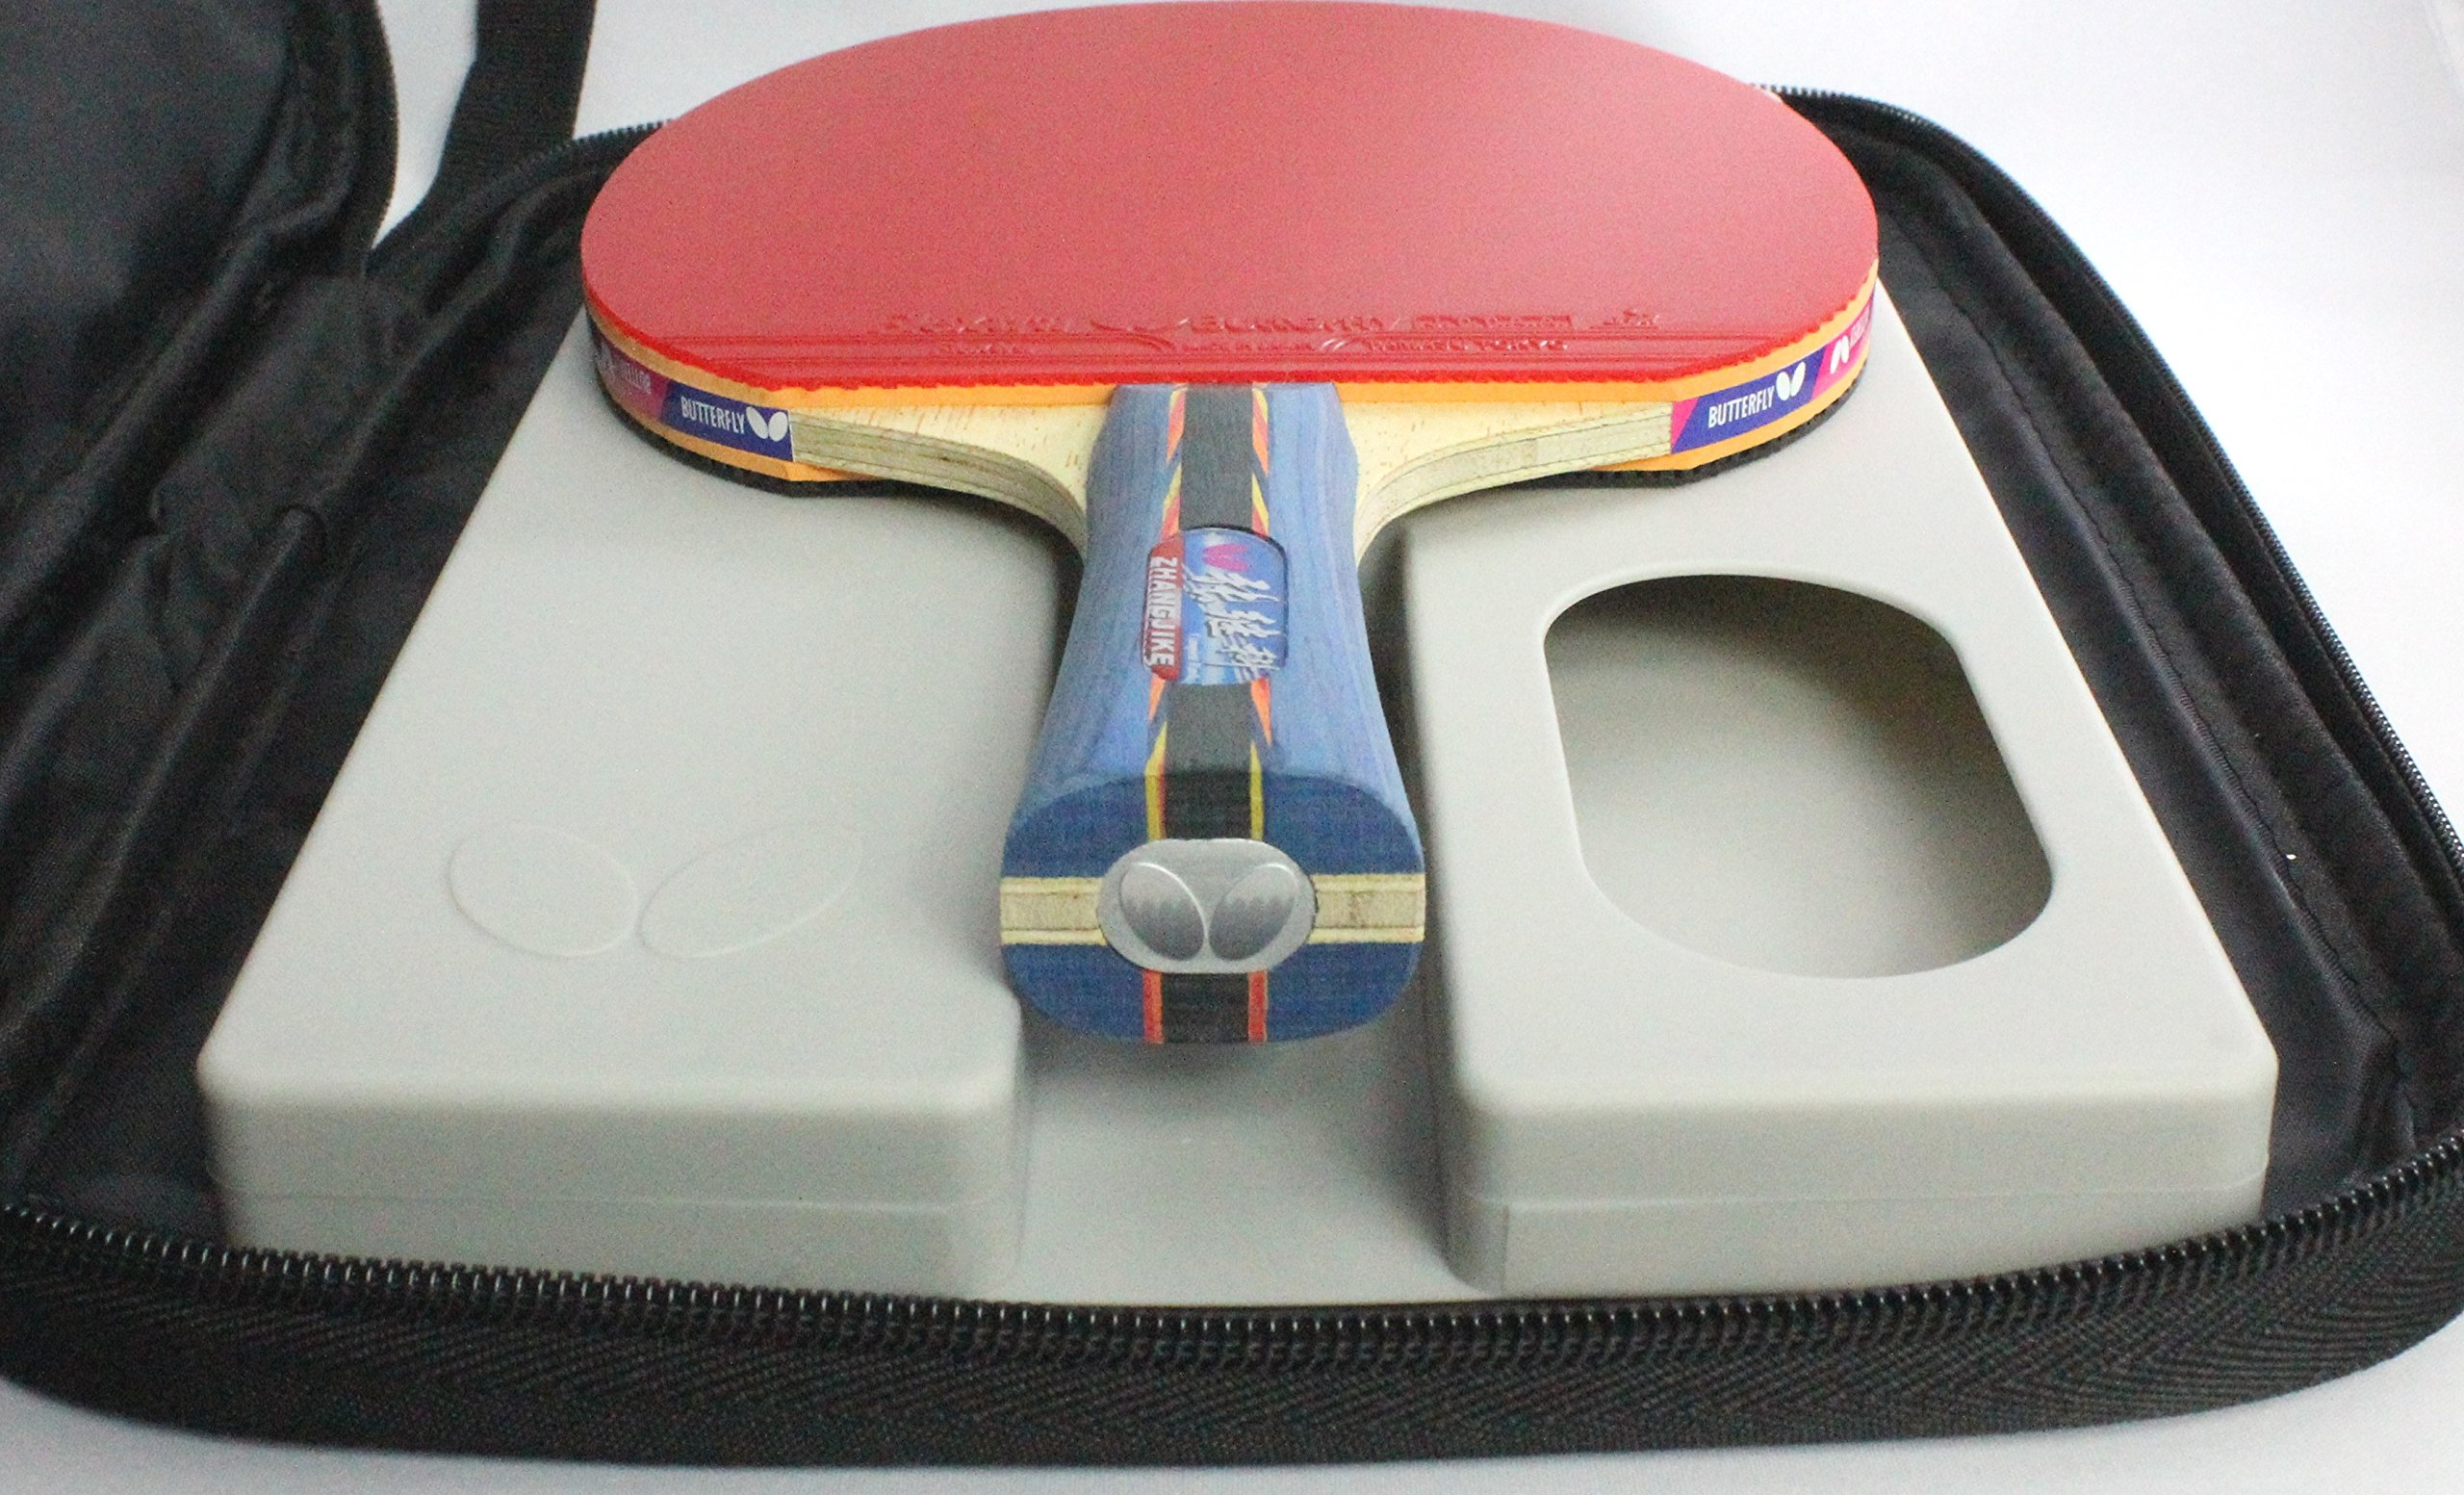 Buttefly Zhang Jike Racket and Case Box Set by Butterfly